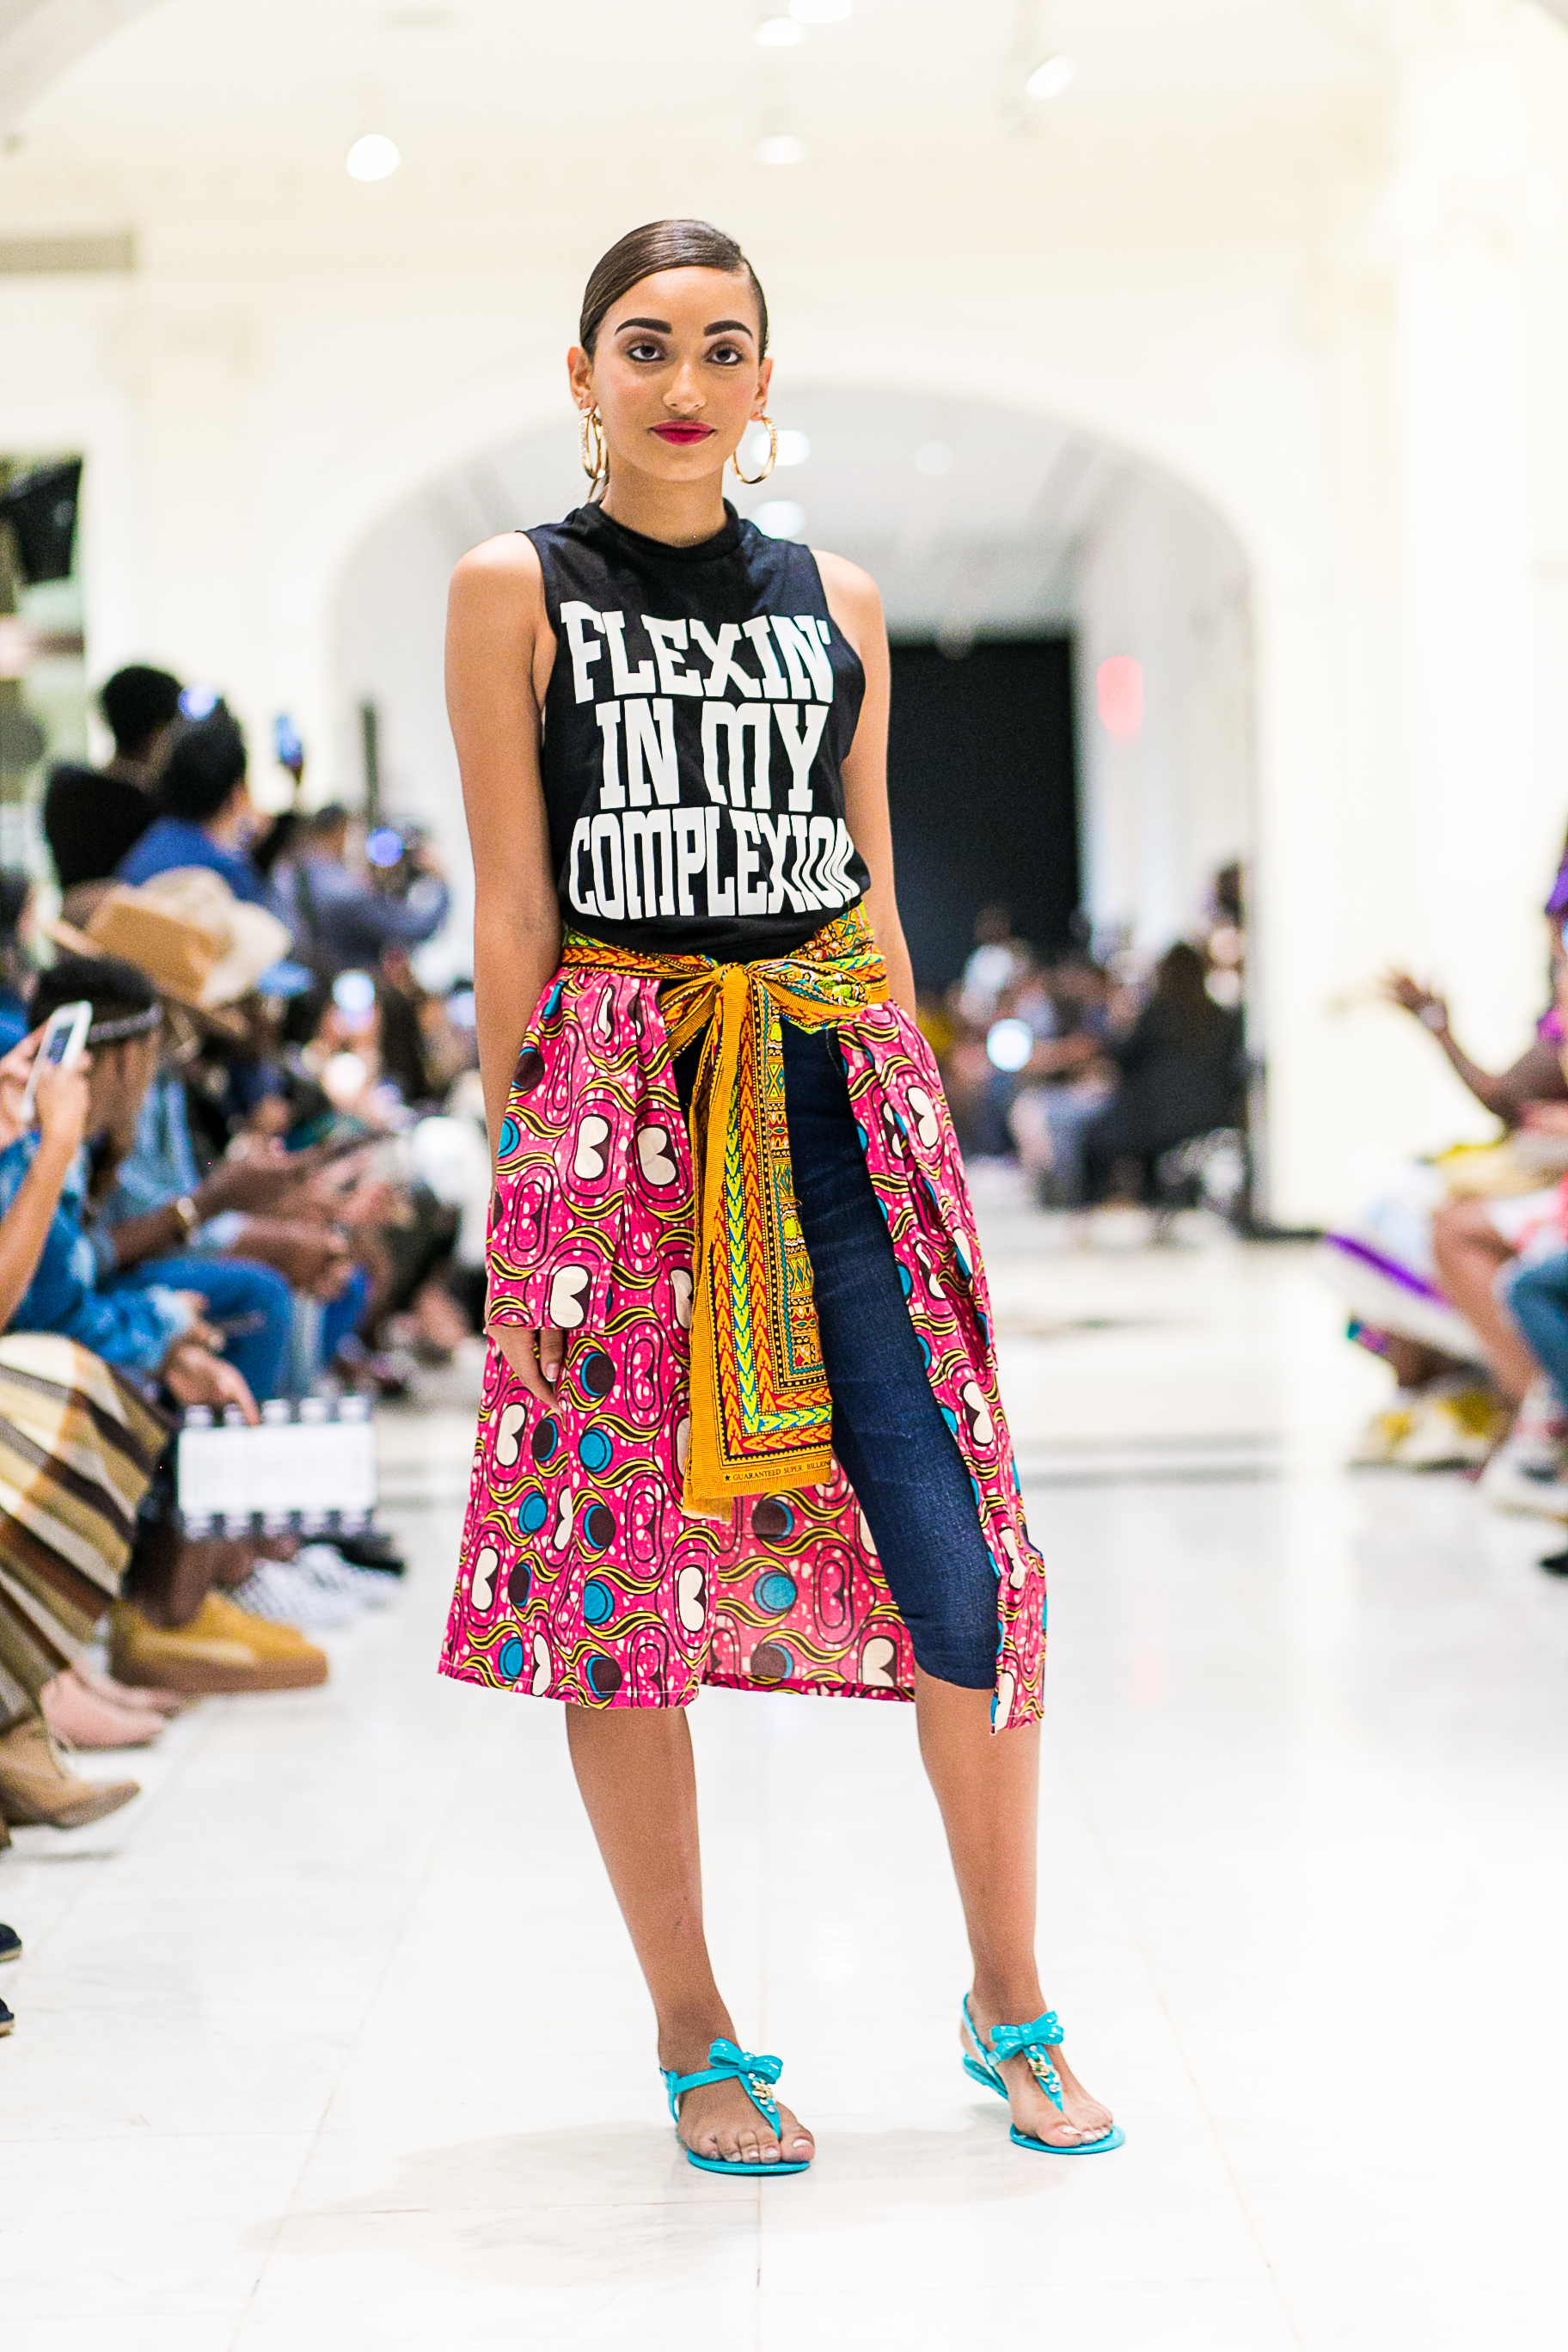 Meet Kheris Rogers The Youngest Designer To Show In Nyfw Mefeater